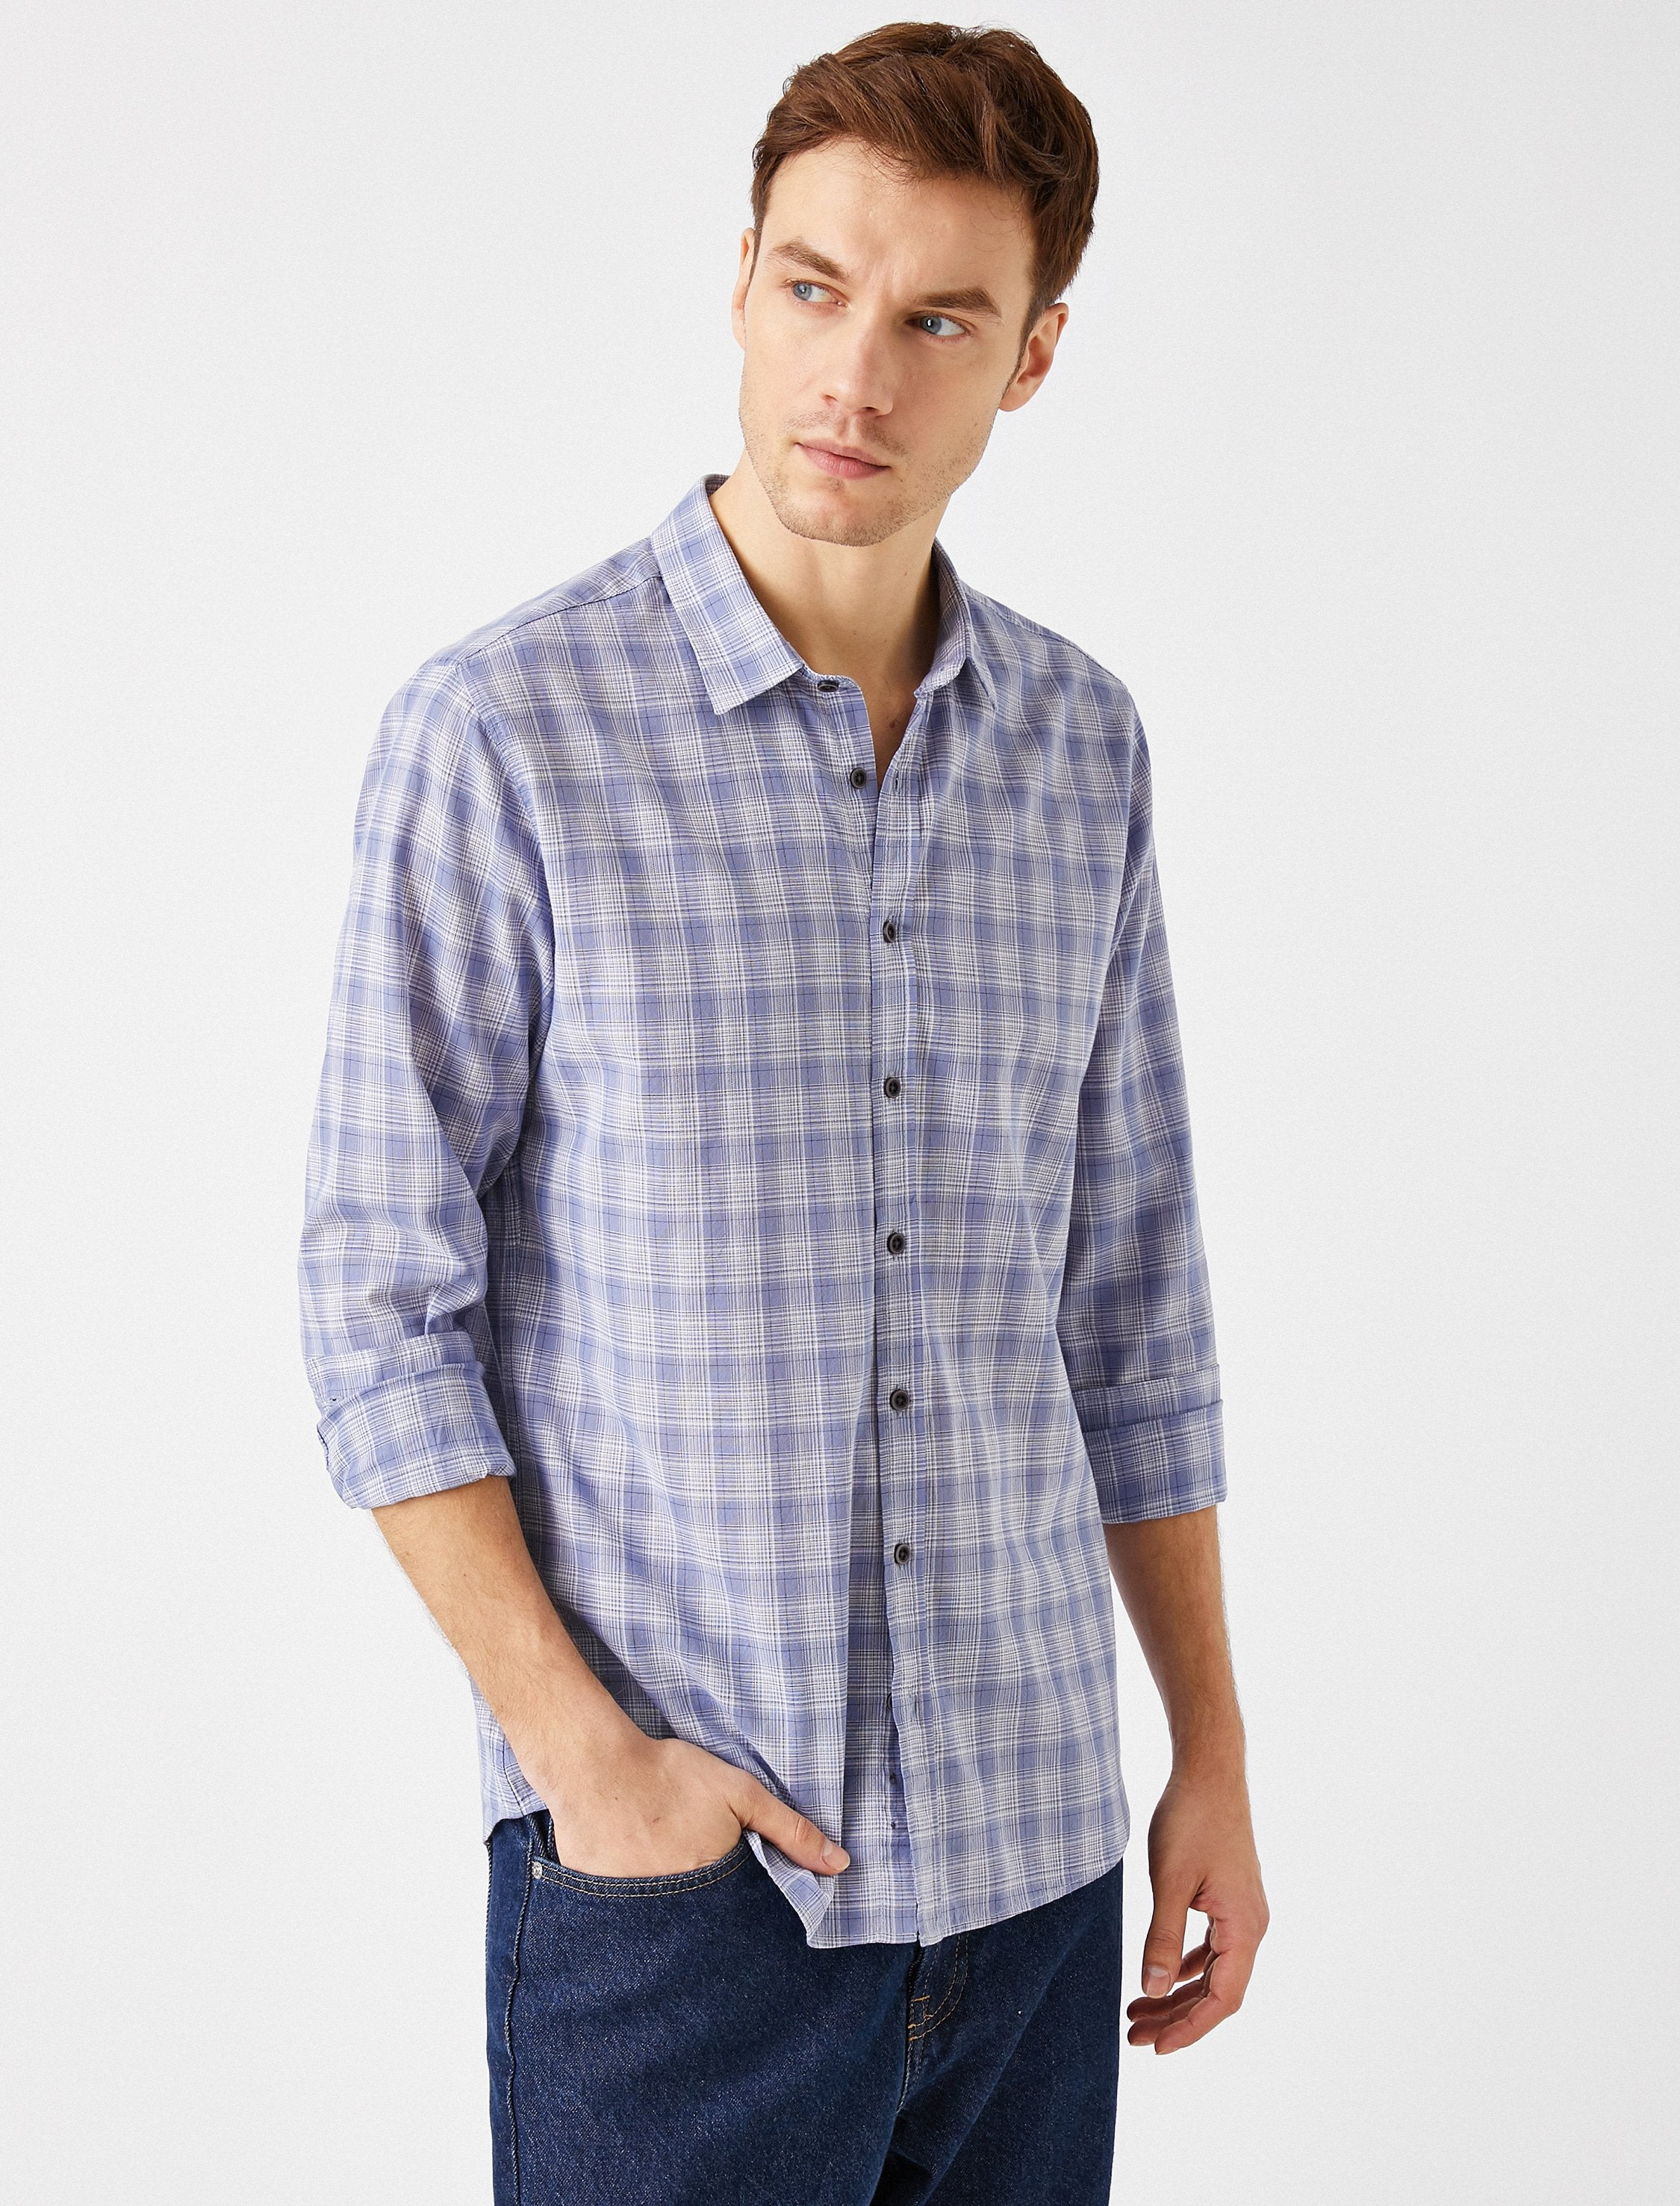 Plaid Shirt in Blue